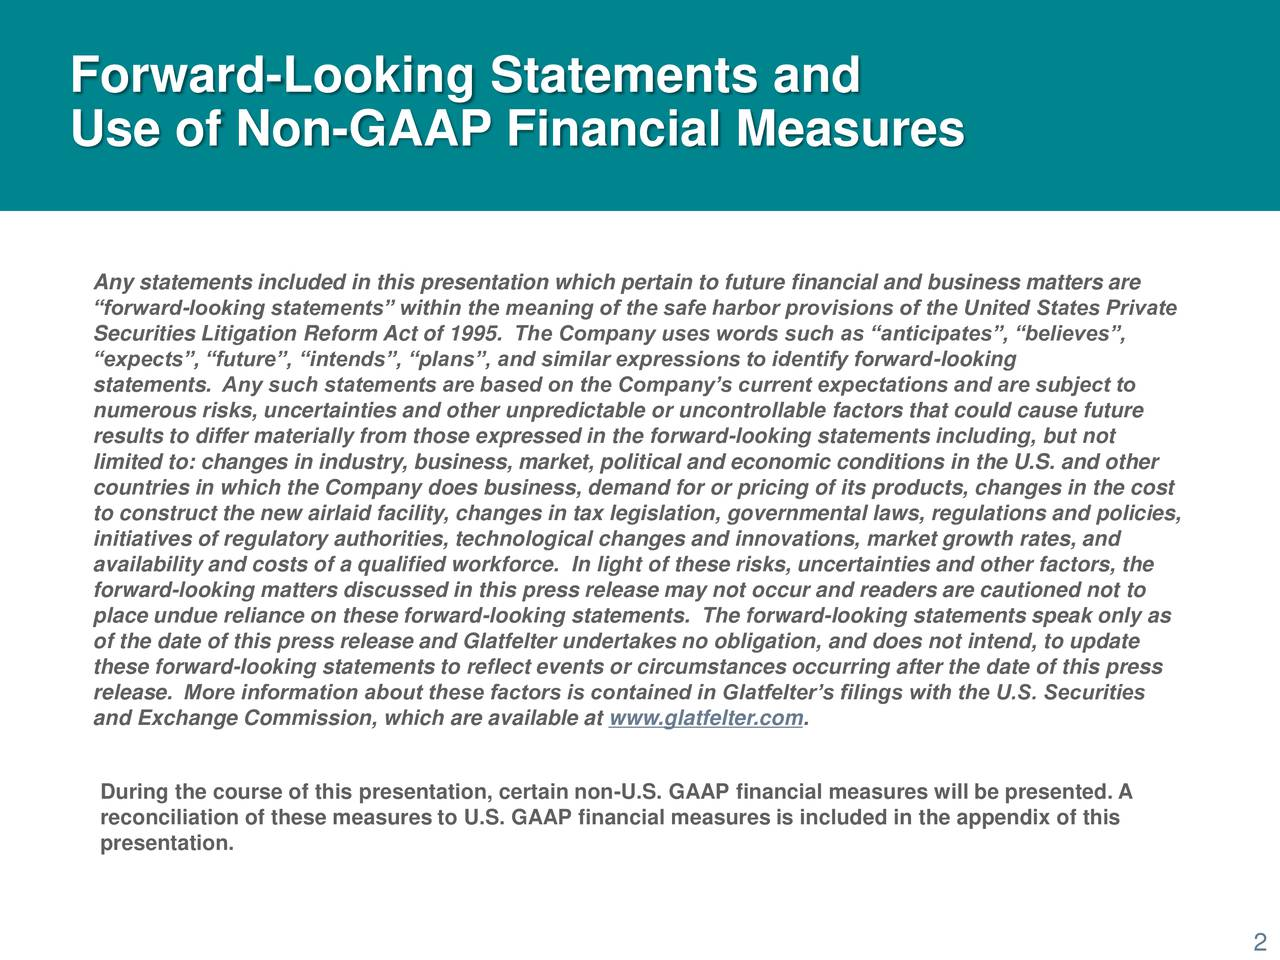 Use of Non-GAAP Financial Measures Any statements included in this presentation which pertain to future financial and business matters are forward-looking statements within the meaning of the safe harbor provisions of the United States Private Securities Litigation Reform Act of 1995. The Company uses words such as anticipates, believes, expects, future, intends, plans, and similar expressions to identify forward-looking statements. Any such statements are based on the Companys current expectations and are subject to numerous risks, uncertainties and other unpredictable or uncontrollable factors that could cause future results to differ materially from those expressed in the forward-looking statements including, but not limited to: changes in industry, business, market, political and economic conditions in the U.S. and other countries in which the Company does business, demand for or pricing of its products, changes in the cost to construct the new airlaid facility, changes in tax legislation, governmental laws, regulations and policies, initiatives of regulatory authorities, technological changes and innovations, market growth rates, and availability and costs of a qualified workforce. In light of these risks, uncertainties and other factors, the forward-looking matters discussed in this press release may not occur and readers are cautioned not to place undue reliance on these forward-looking statements. The forward-looking statements speak only as of the date of this press release and Glatfelter undertakes no obligation, and does not intend, to update these forward-looking statements to reflect events or circumstances occurring after the date of this press release. More information about these factors is contained in Glatfelters filings with the U.S. Securities and Exchange Commission, which are available at www.glatfelter.com. During the course of this presentation, certain non-U.S. GAAP financial measures will be presented. A reconciliation of these measures to 